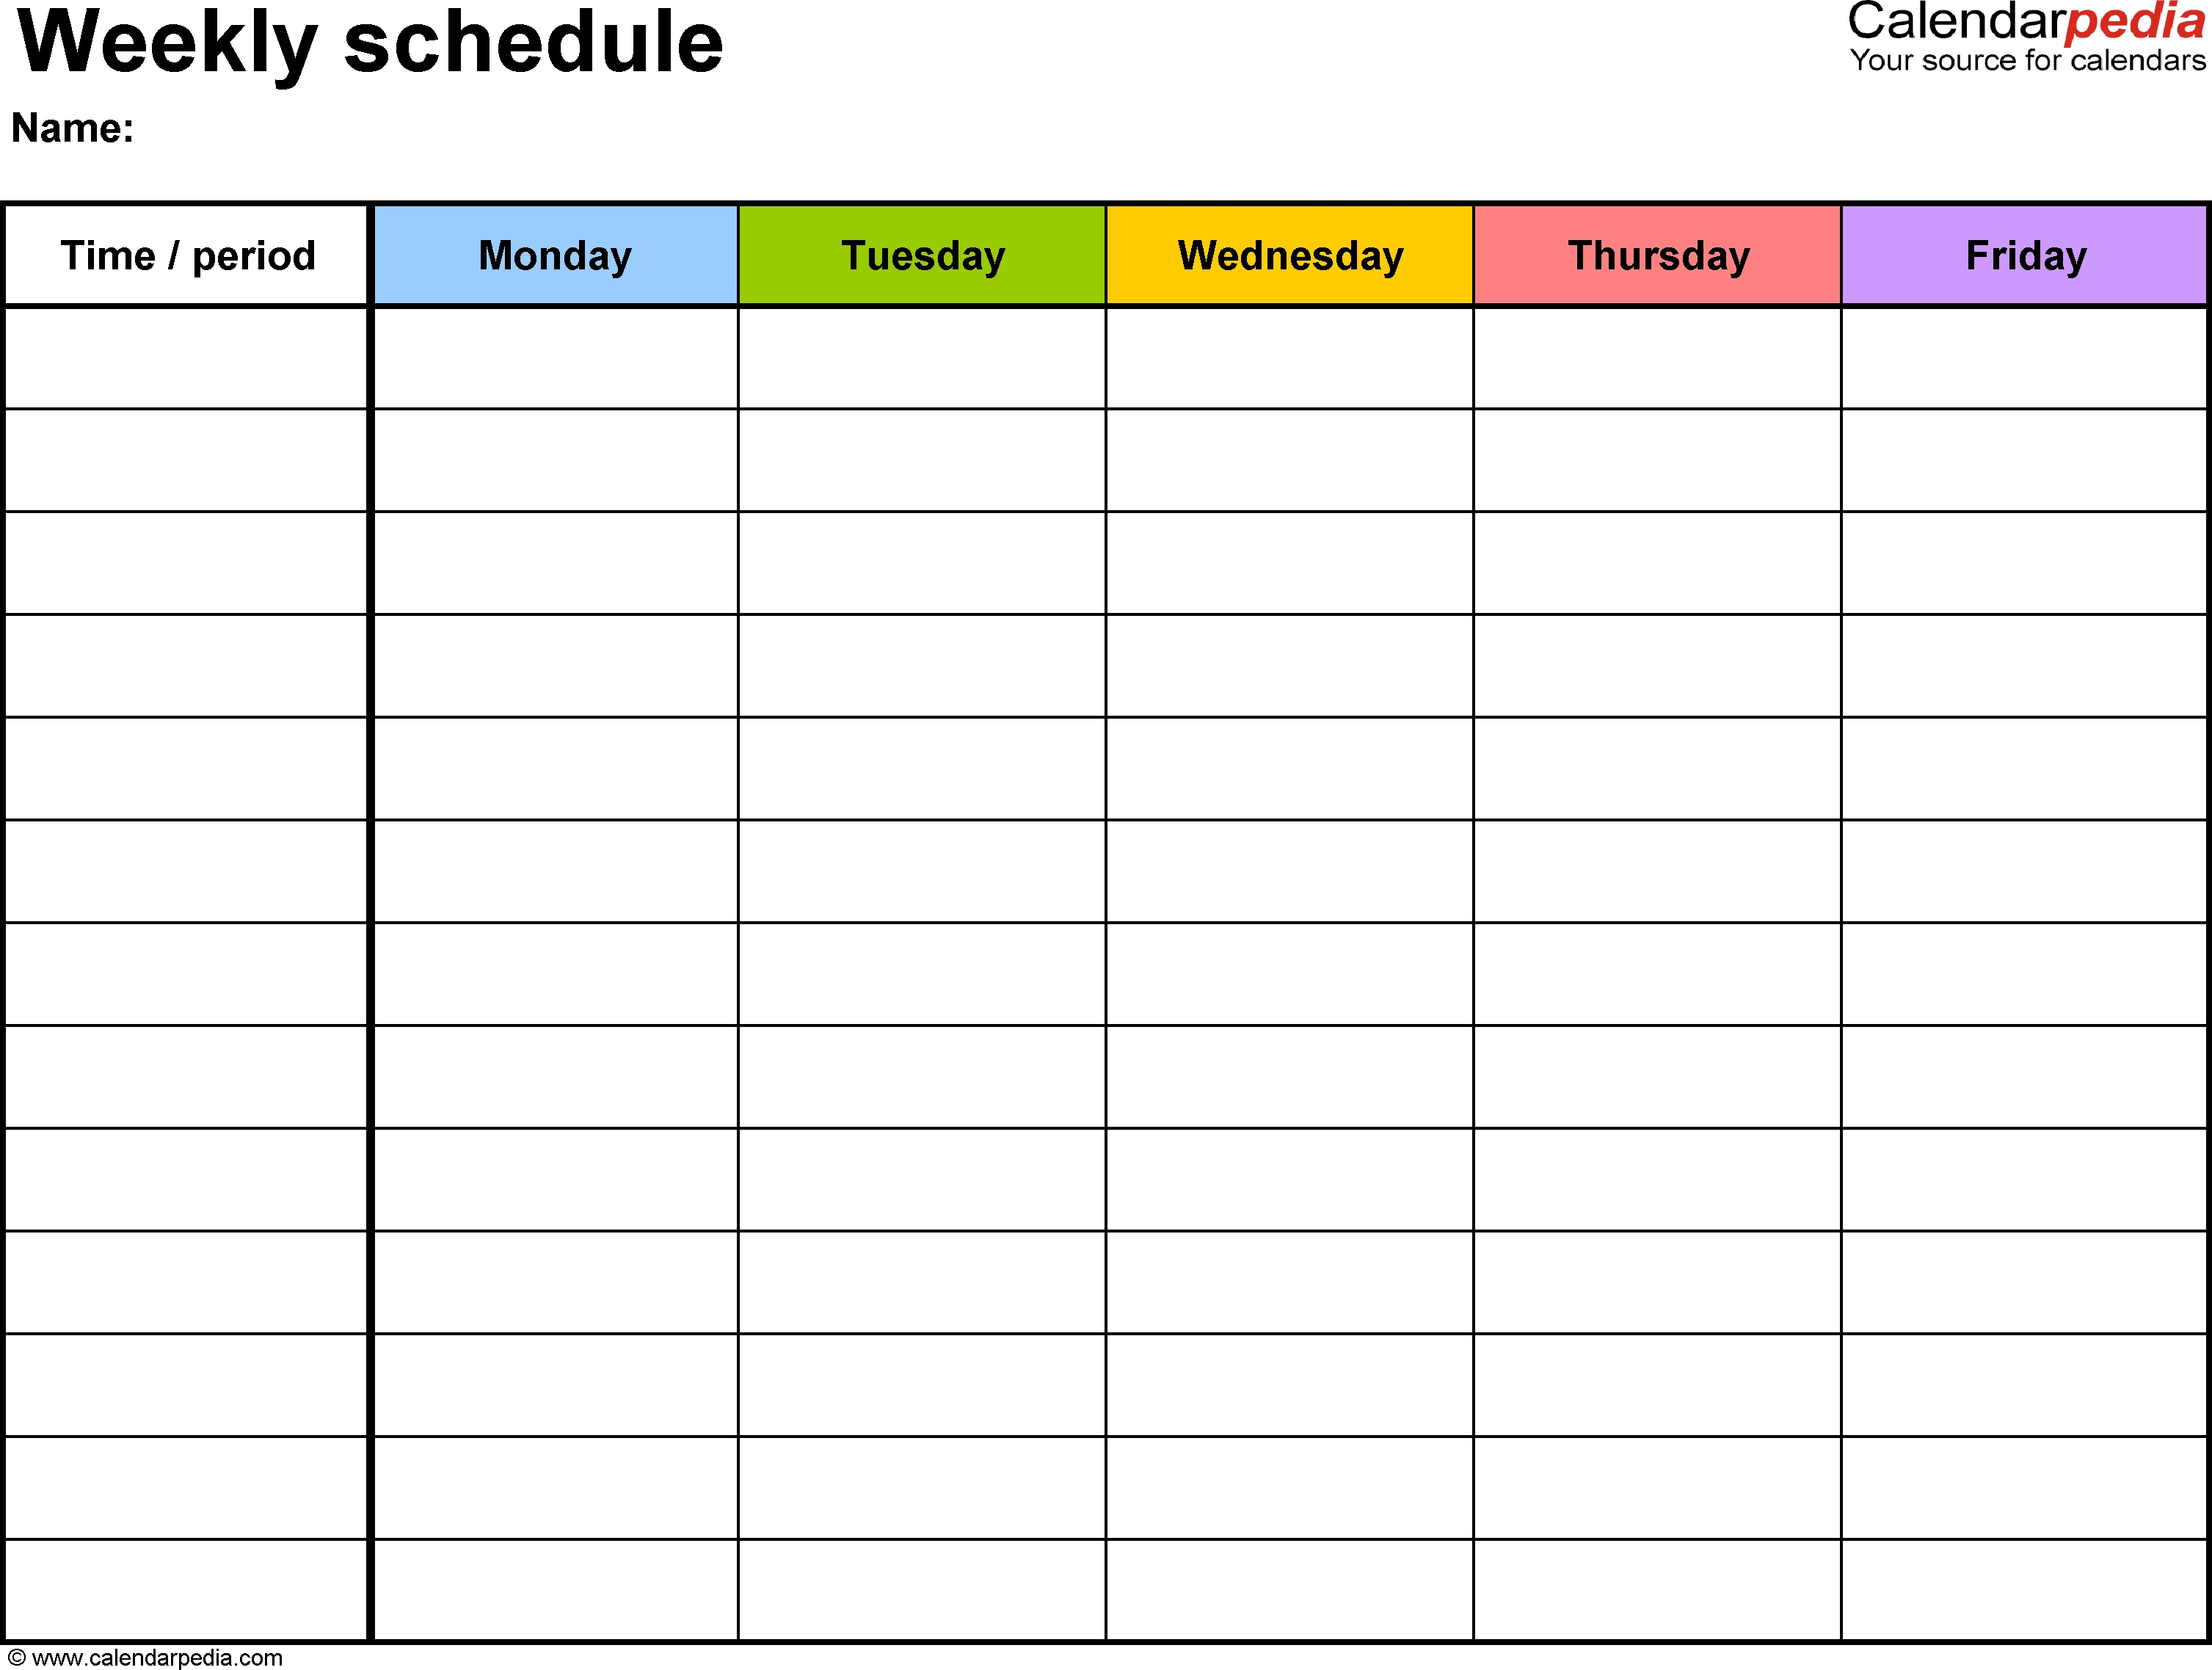 Free Weekly Schedule Templates For Word - 18 Templates throughout Days Of The Week Printable Calendar